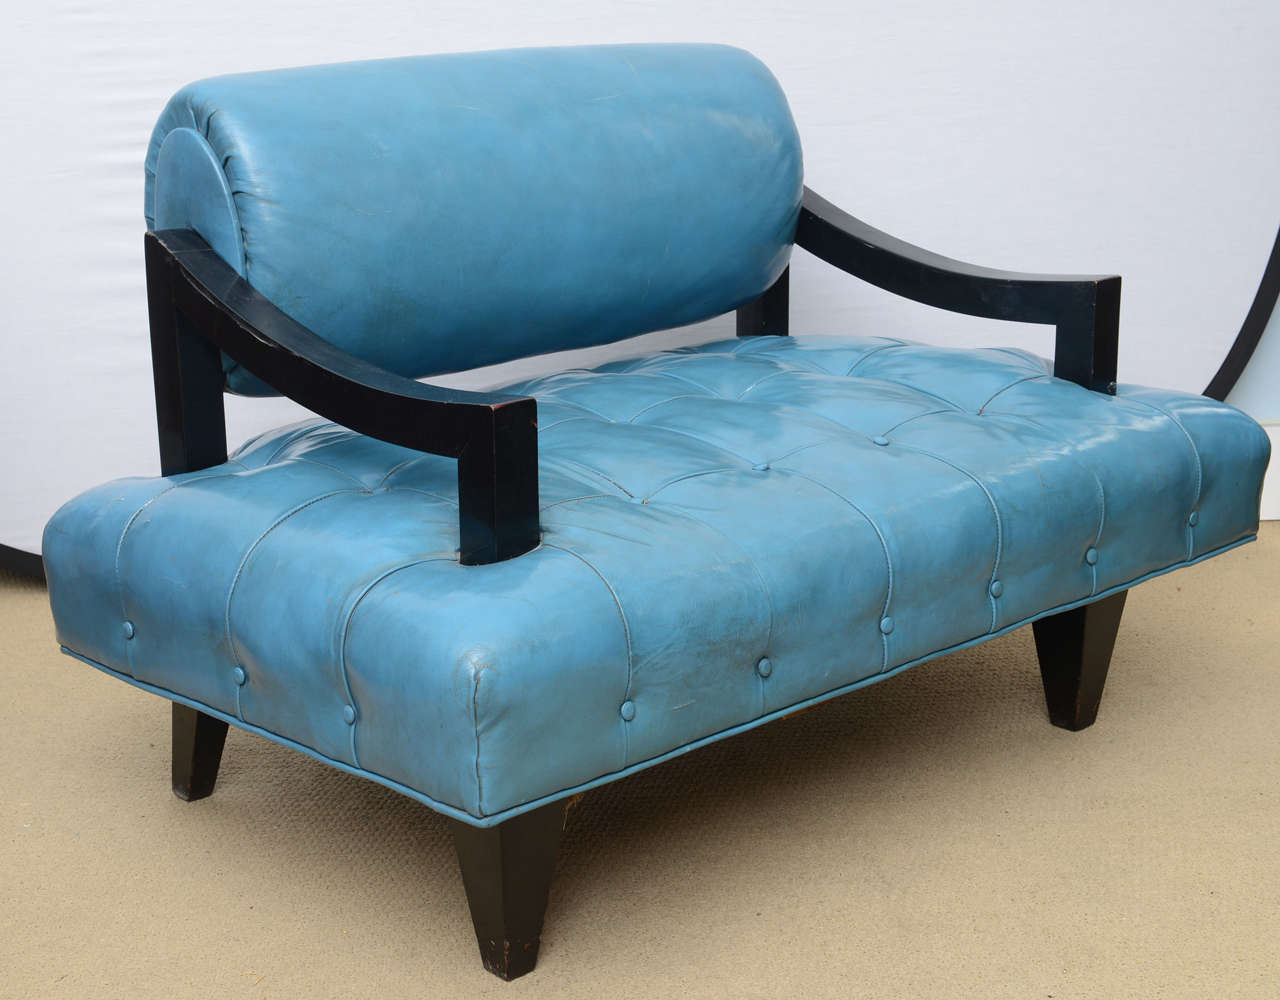 Pair of james mont mid century modern lounge chairs all for Mid century modern leather chairs